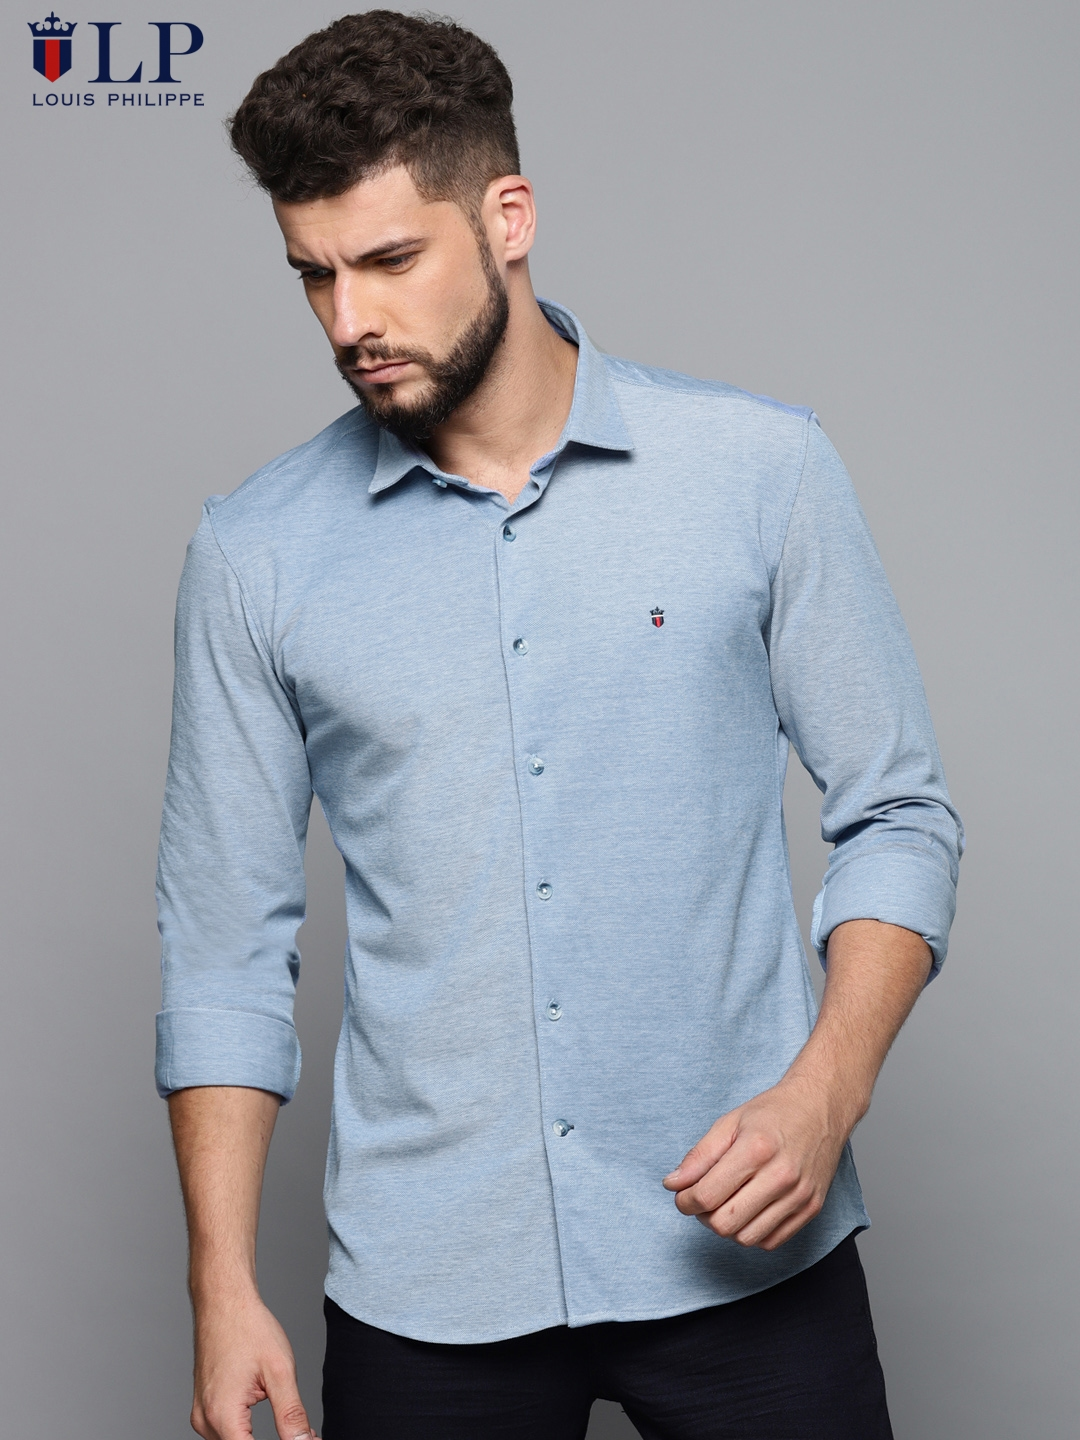 823a7f5a30ce27 Buy Louis Philippe Sport Men Blue Super Slim Fit Solid Casual Shirt ...